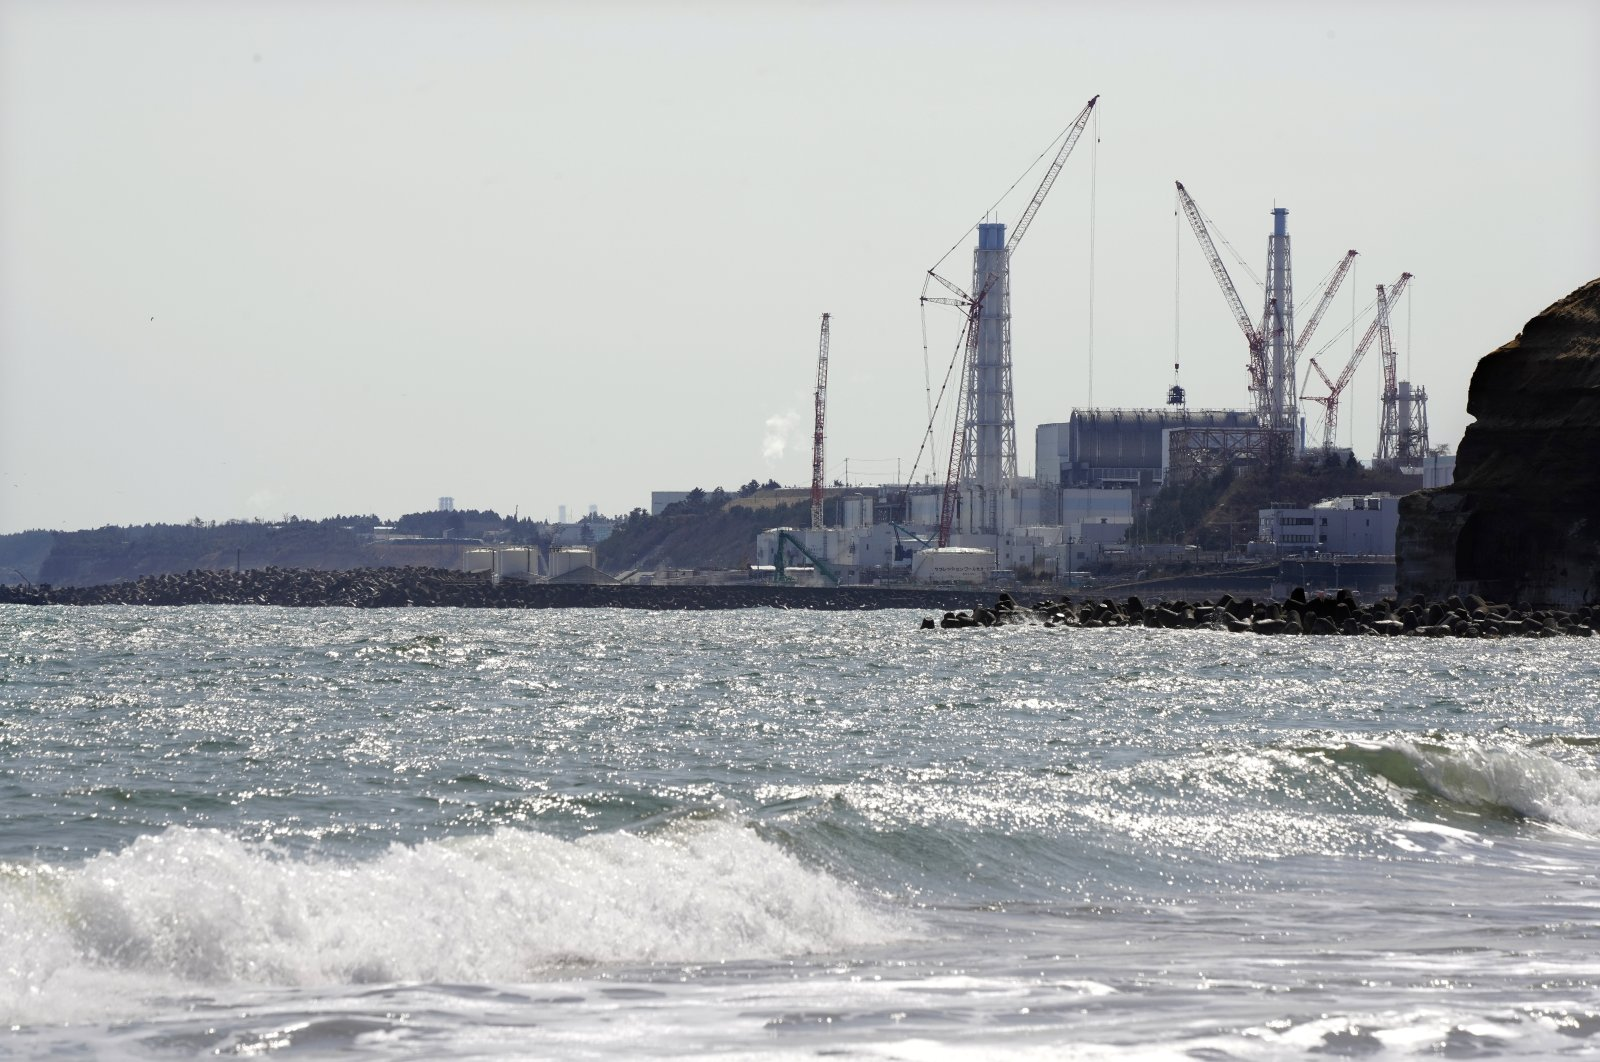 A view of Tokyo Electrical Power Company's (TEPCO) Fukushima Daiichi Nuclear Power Plant undergoing decommissioning work, as seen from Namie, Fukushima Prefecture, northern Japan, March 11, 2021. (EPA Photo)